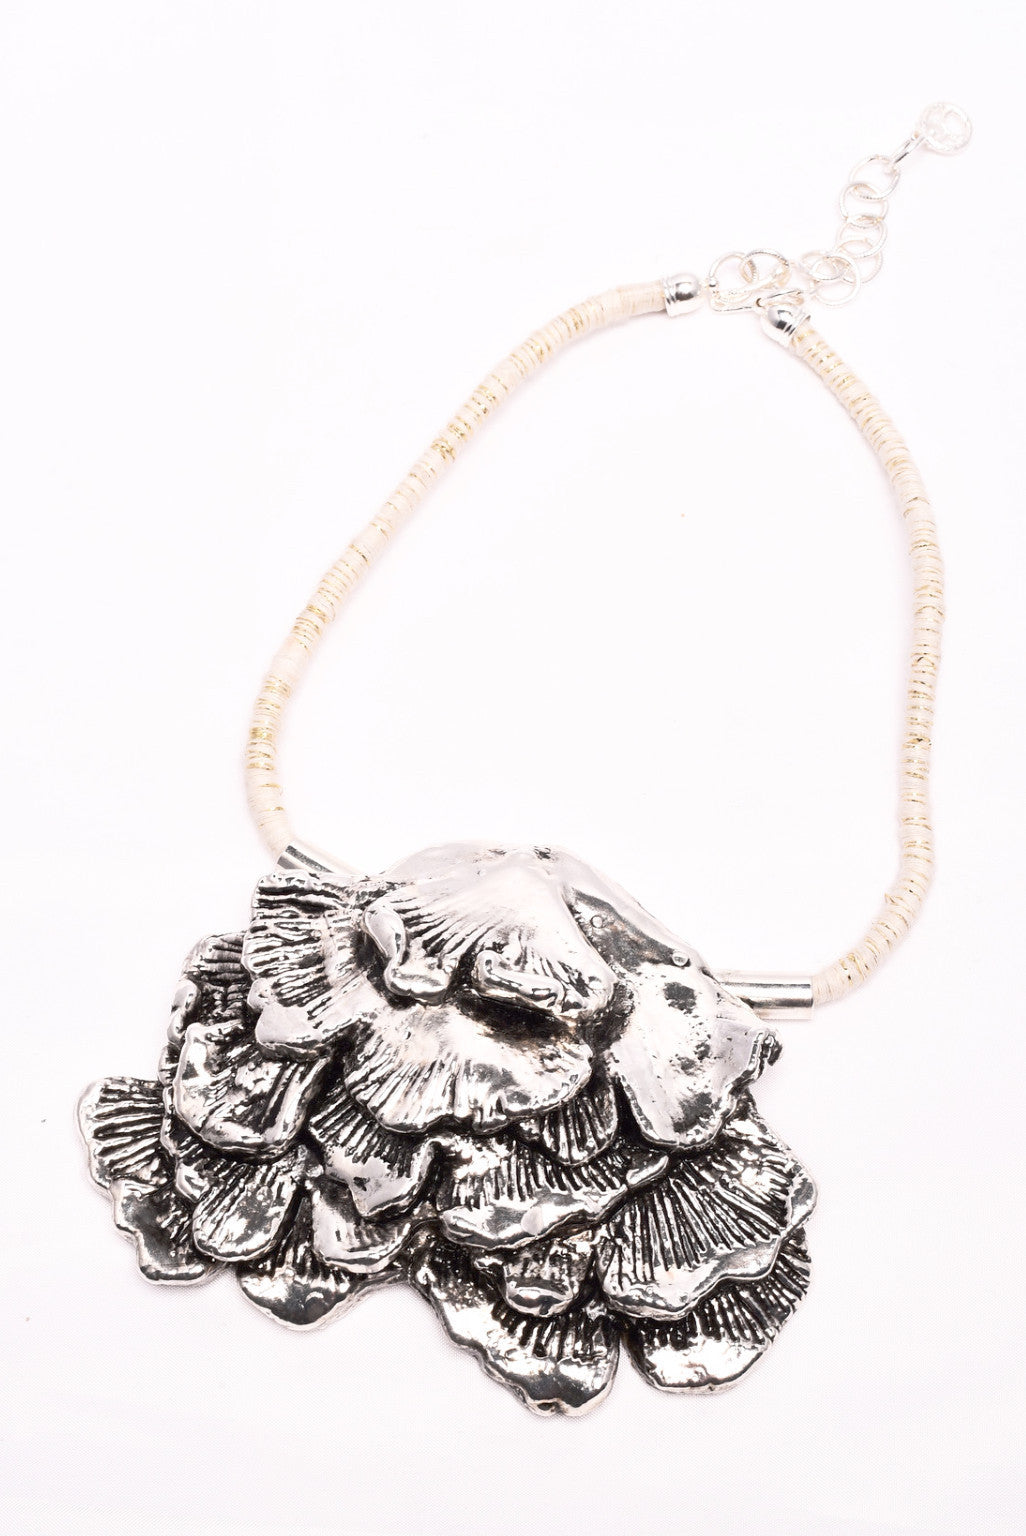 seaweed in silver antique plated necklace with white/gold cotton cord Design by Alexandra Koumba